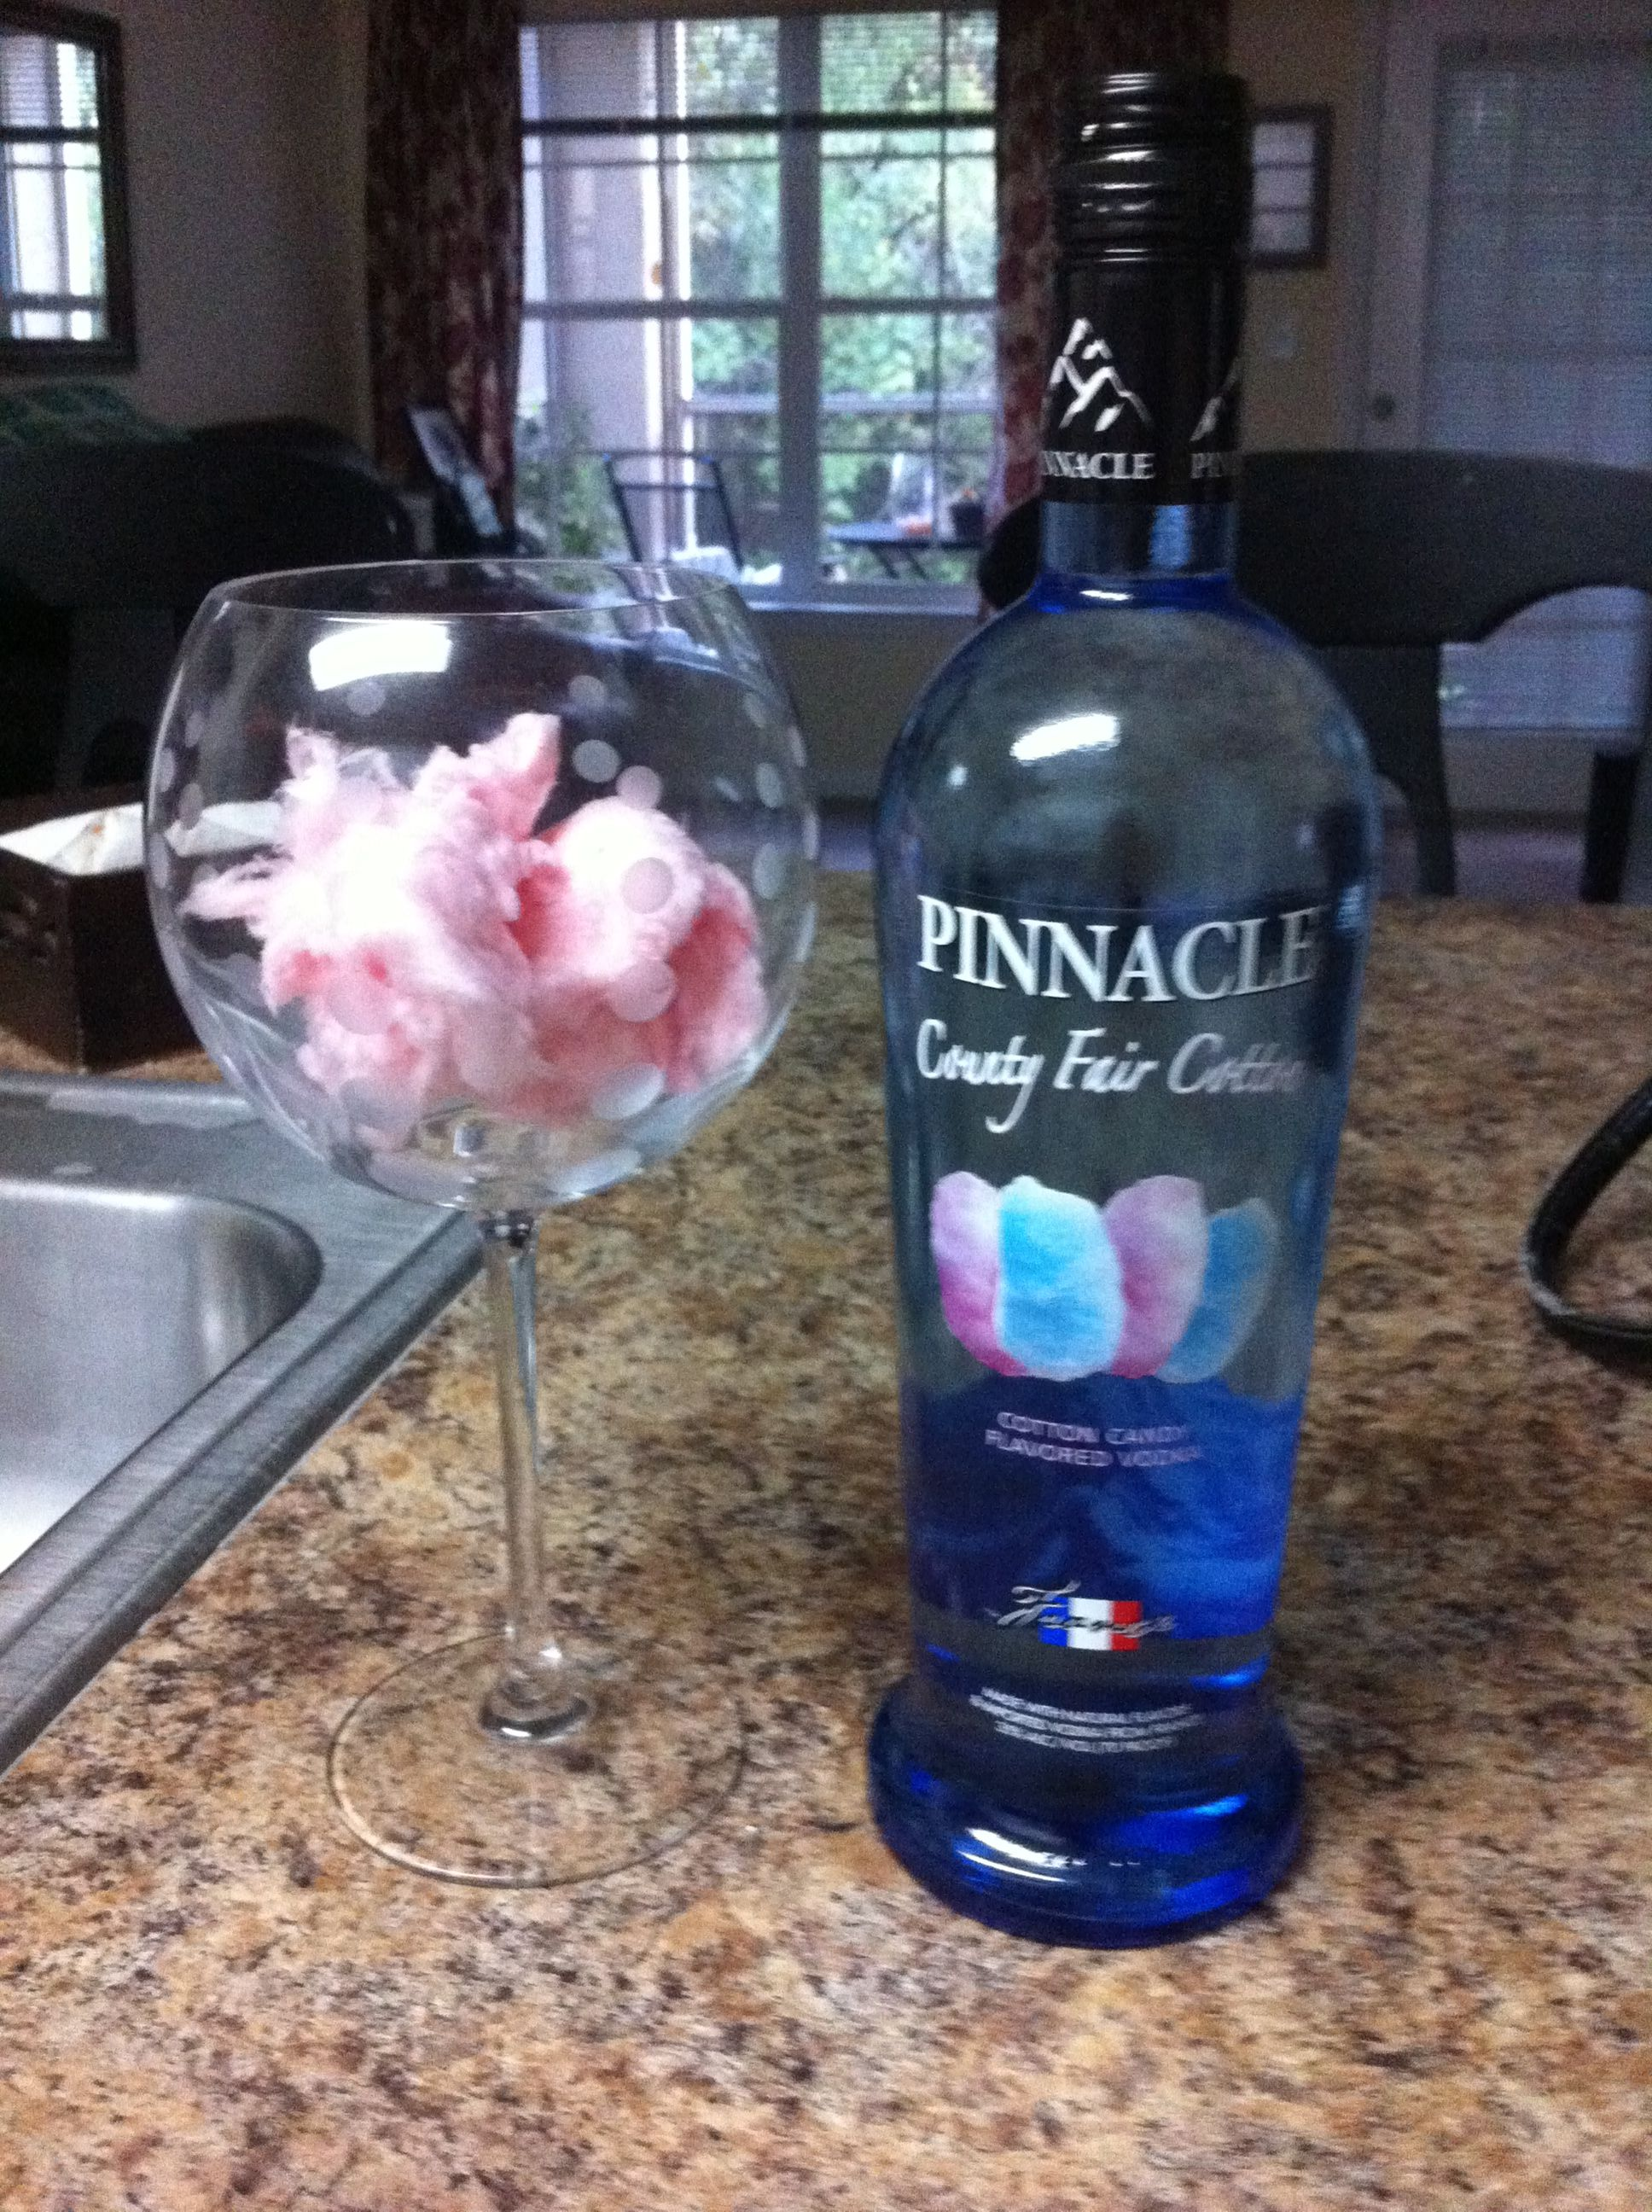 Cotton Candy Pinnacle Vodka Flavored And Ginger Ale